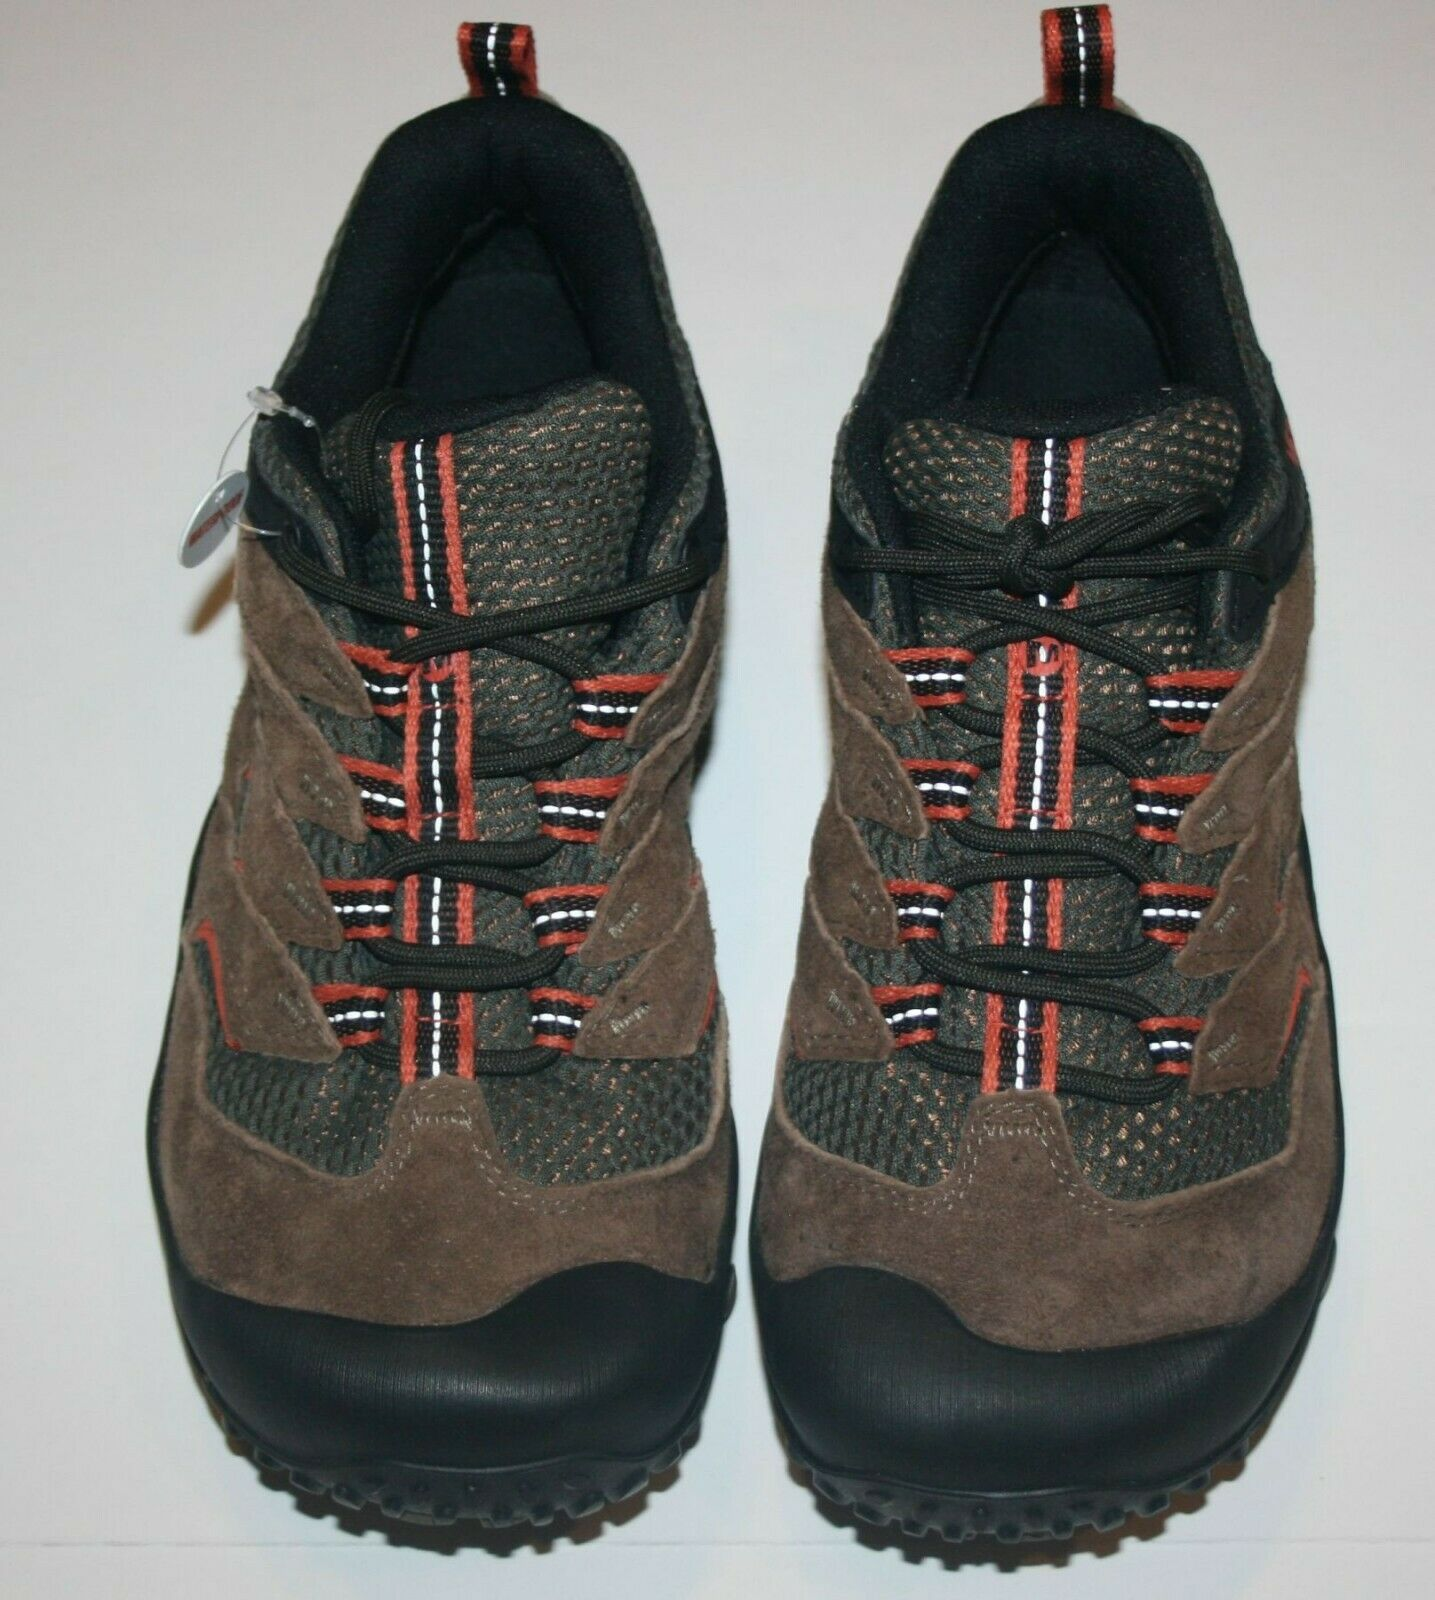 New Merrell Men's Chameleon 7  Limit USA 8 Euro 41.5 M J12767 Brown Water Proof  customers first